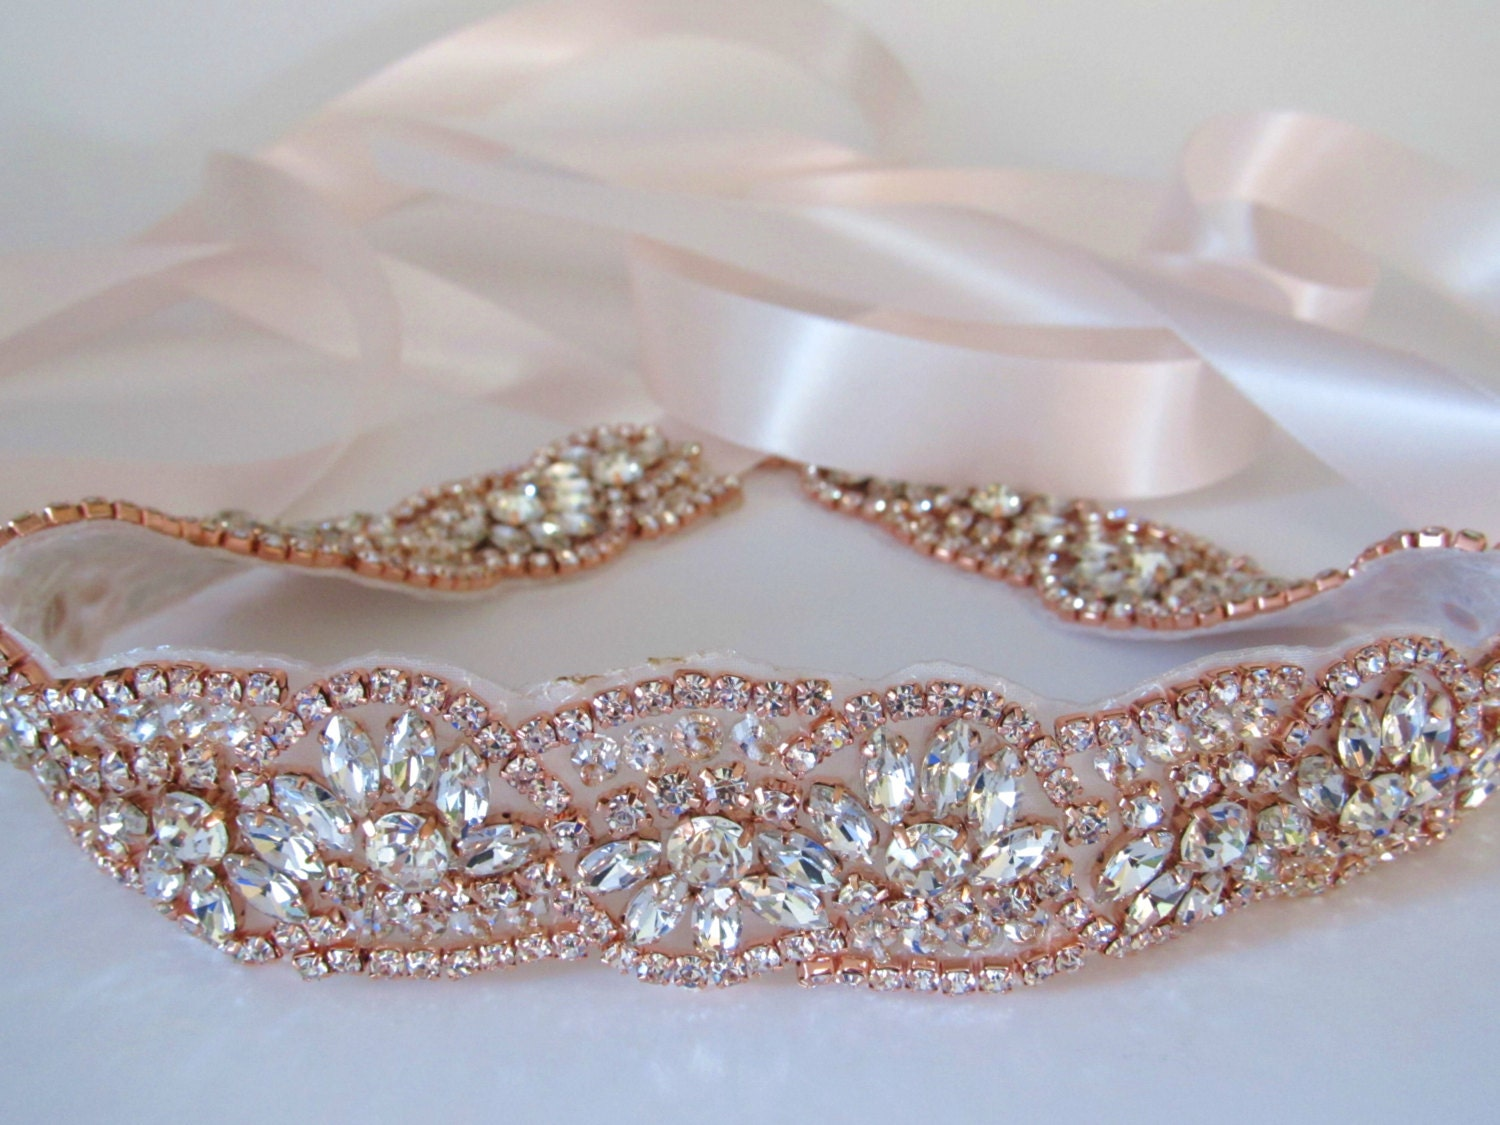 Rose Gold Crystal Rhinestone Bridal Sash,Wedding sash,Bridal Accessories,Bridal Belt and sashes,Ribbon Sash,Style #46